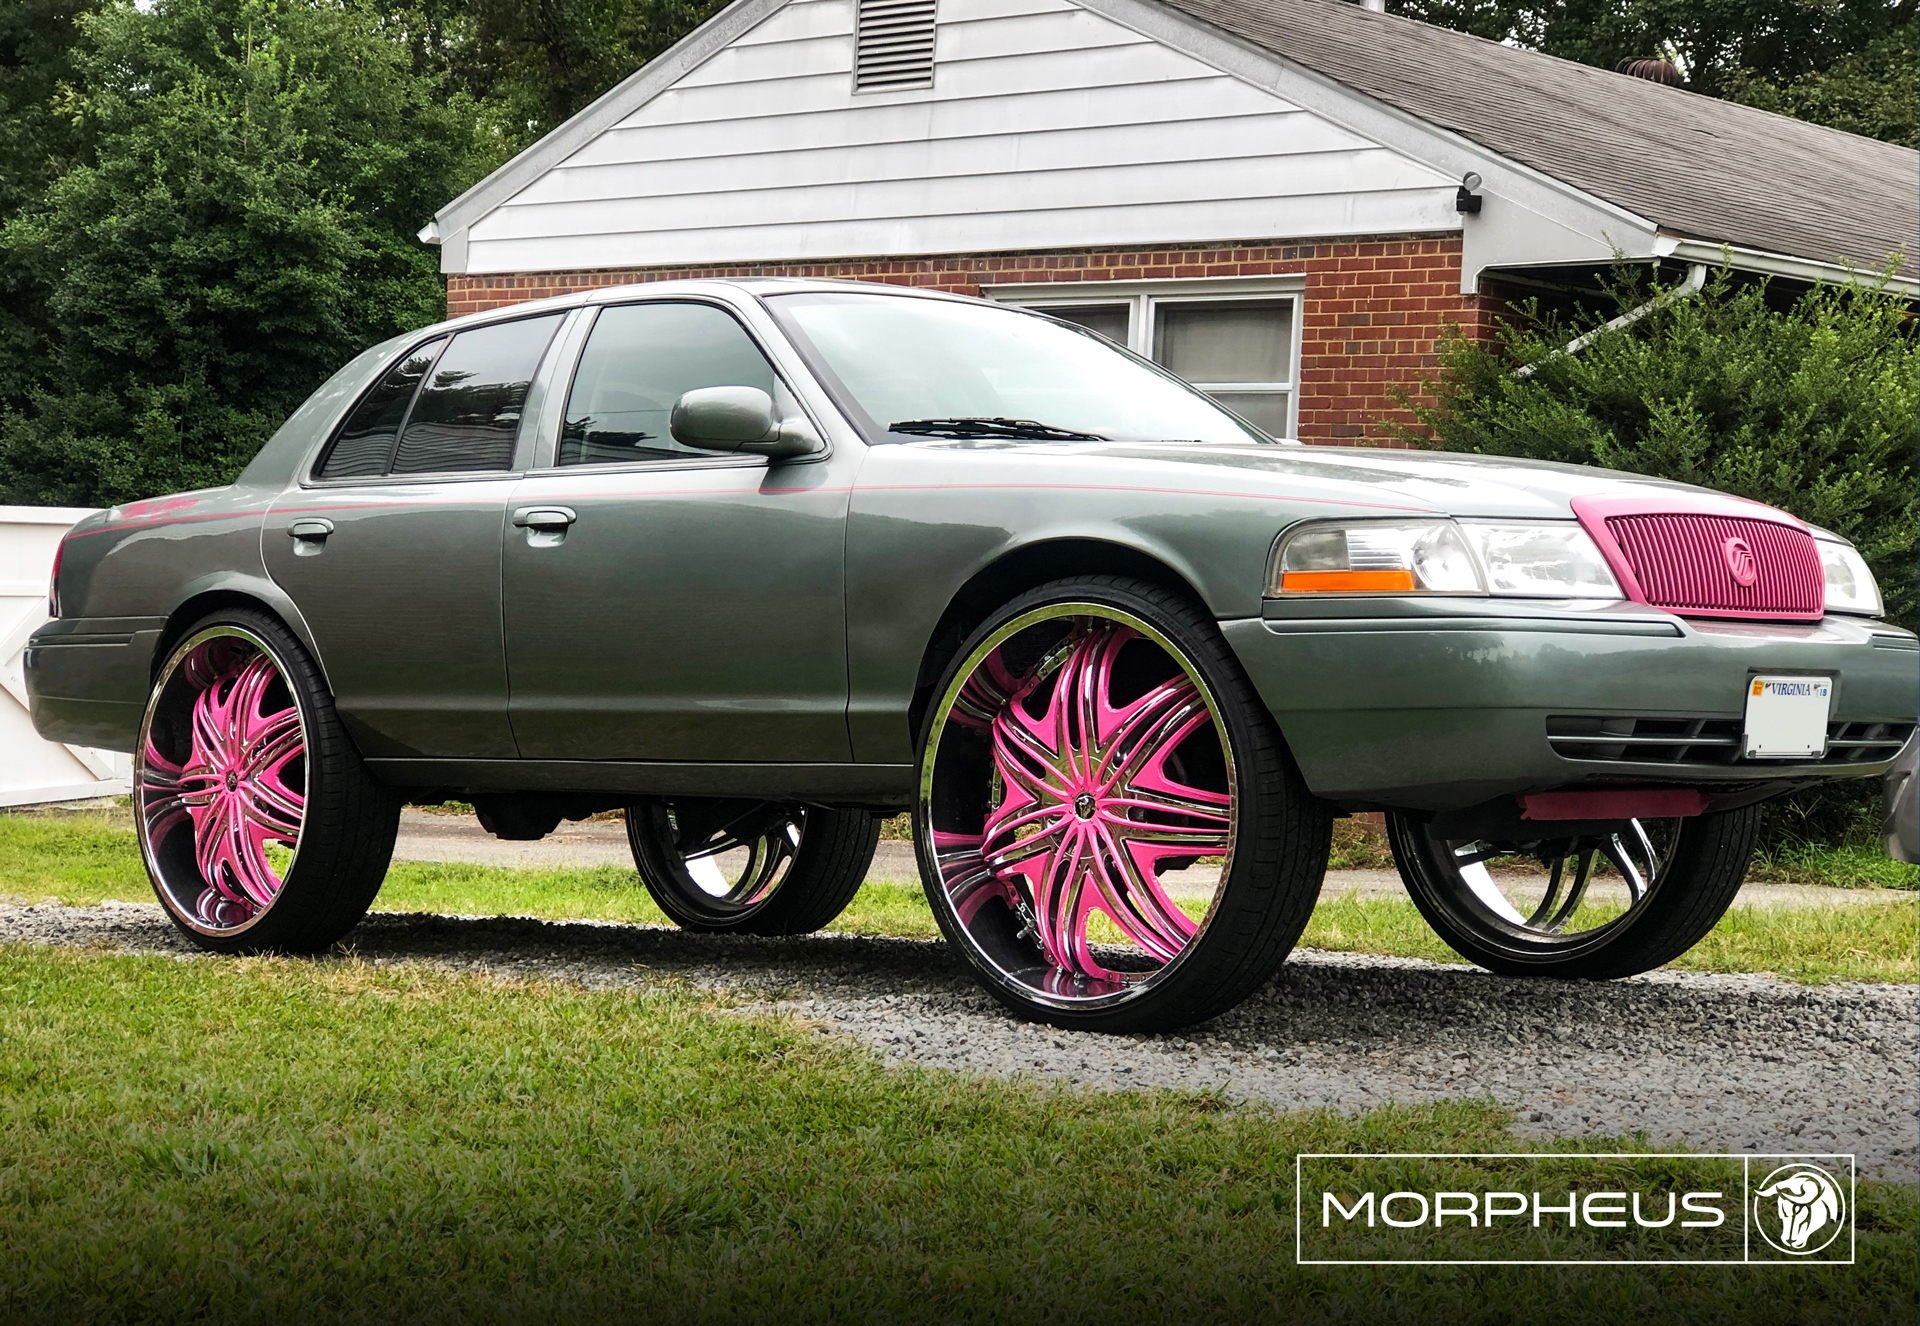 Morpheus Diablo Wheels Mercury Grand Marquis